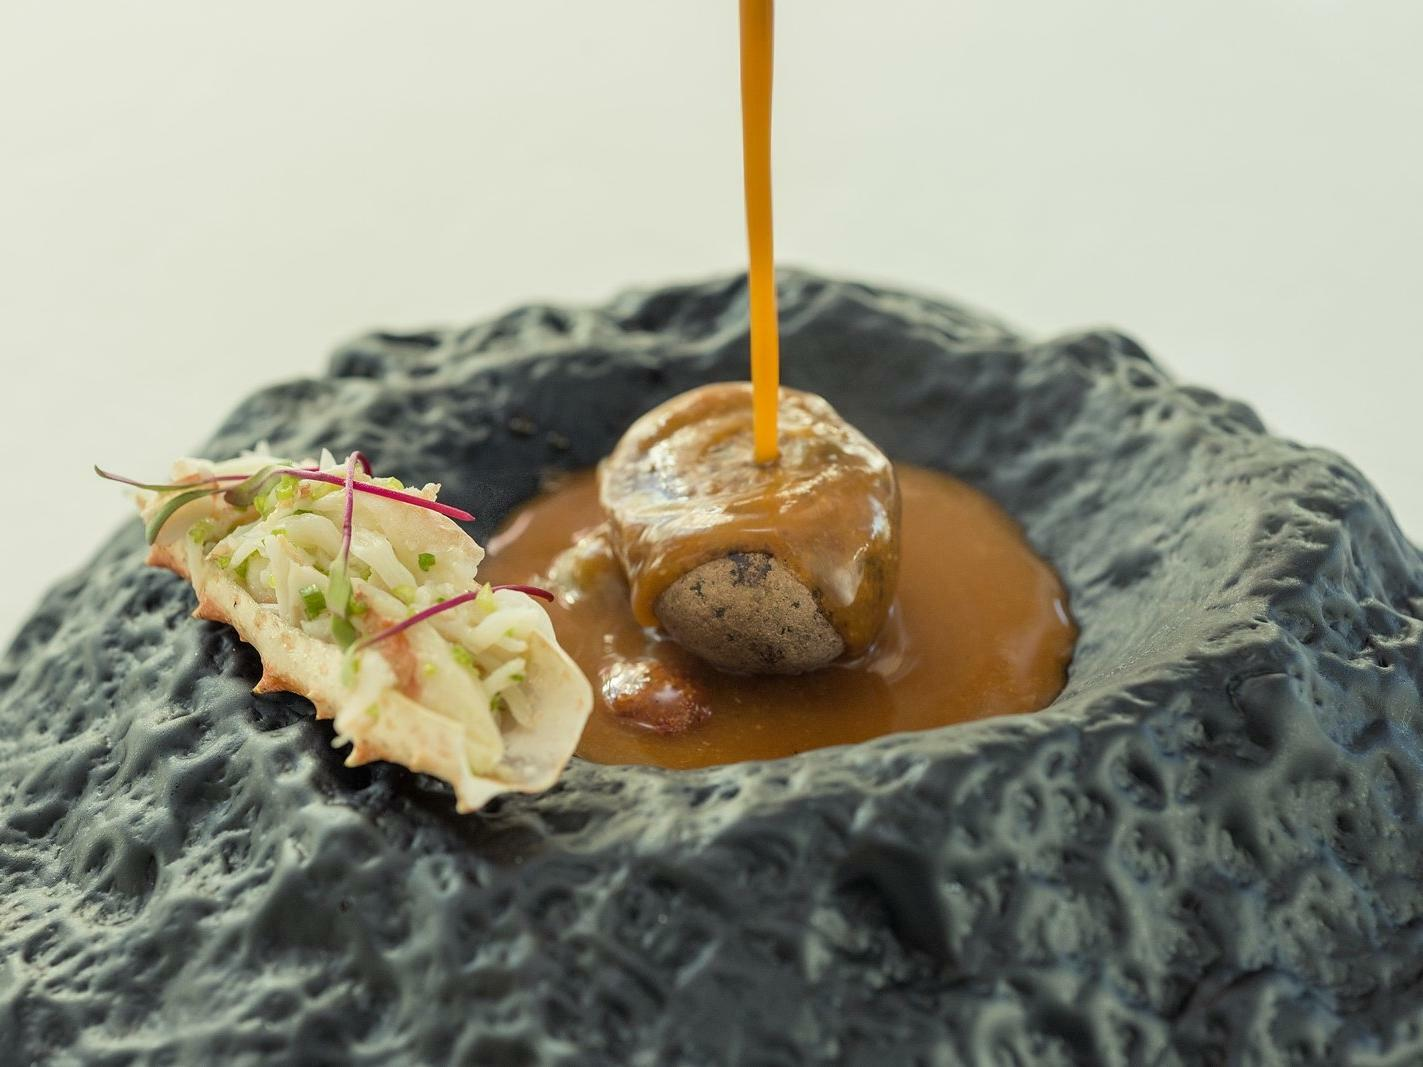 artfully plated food with sauce being drizzled over food